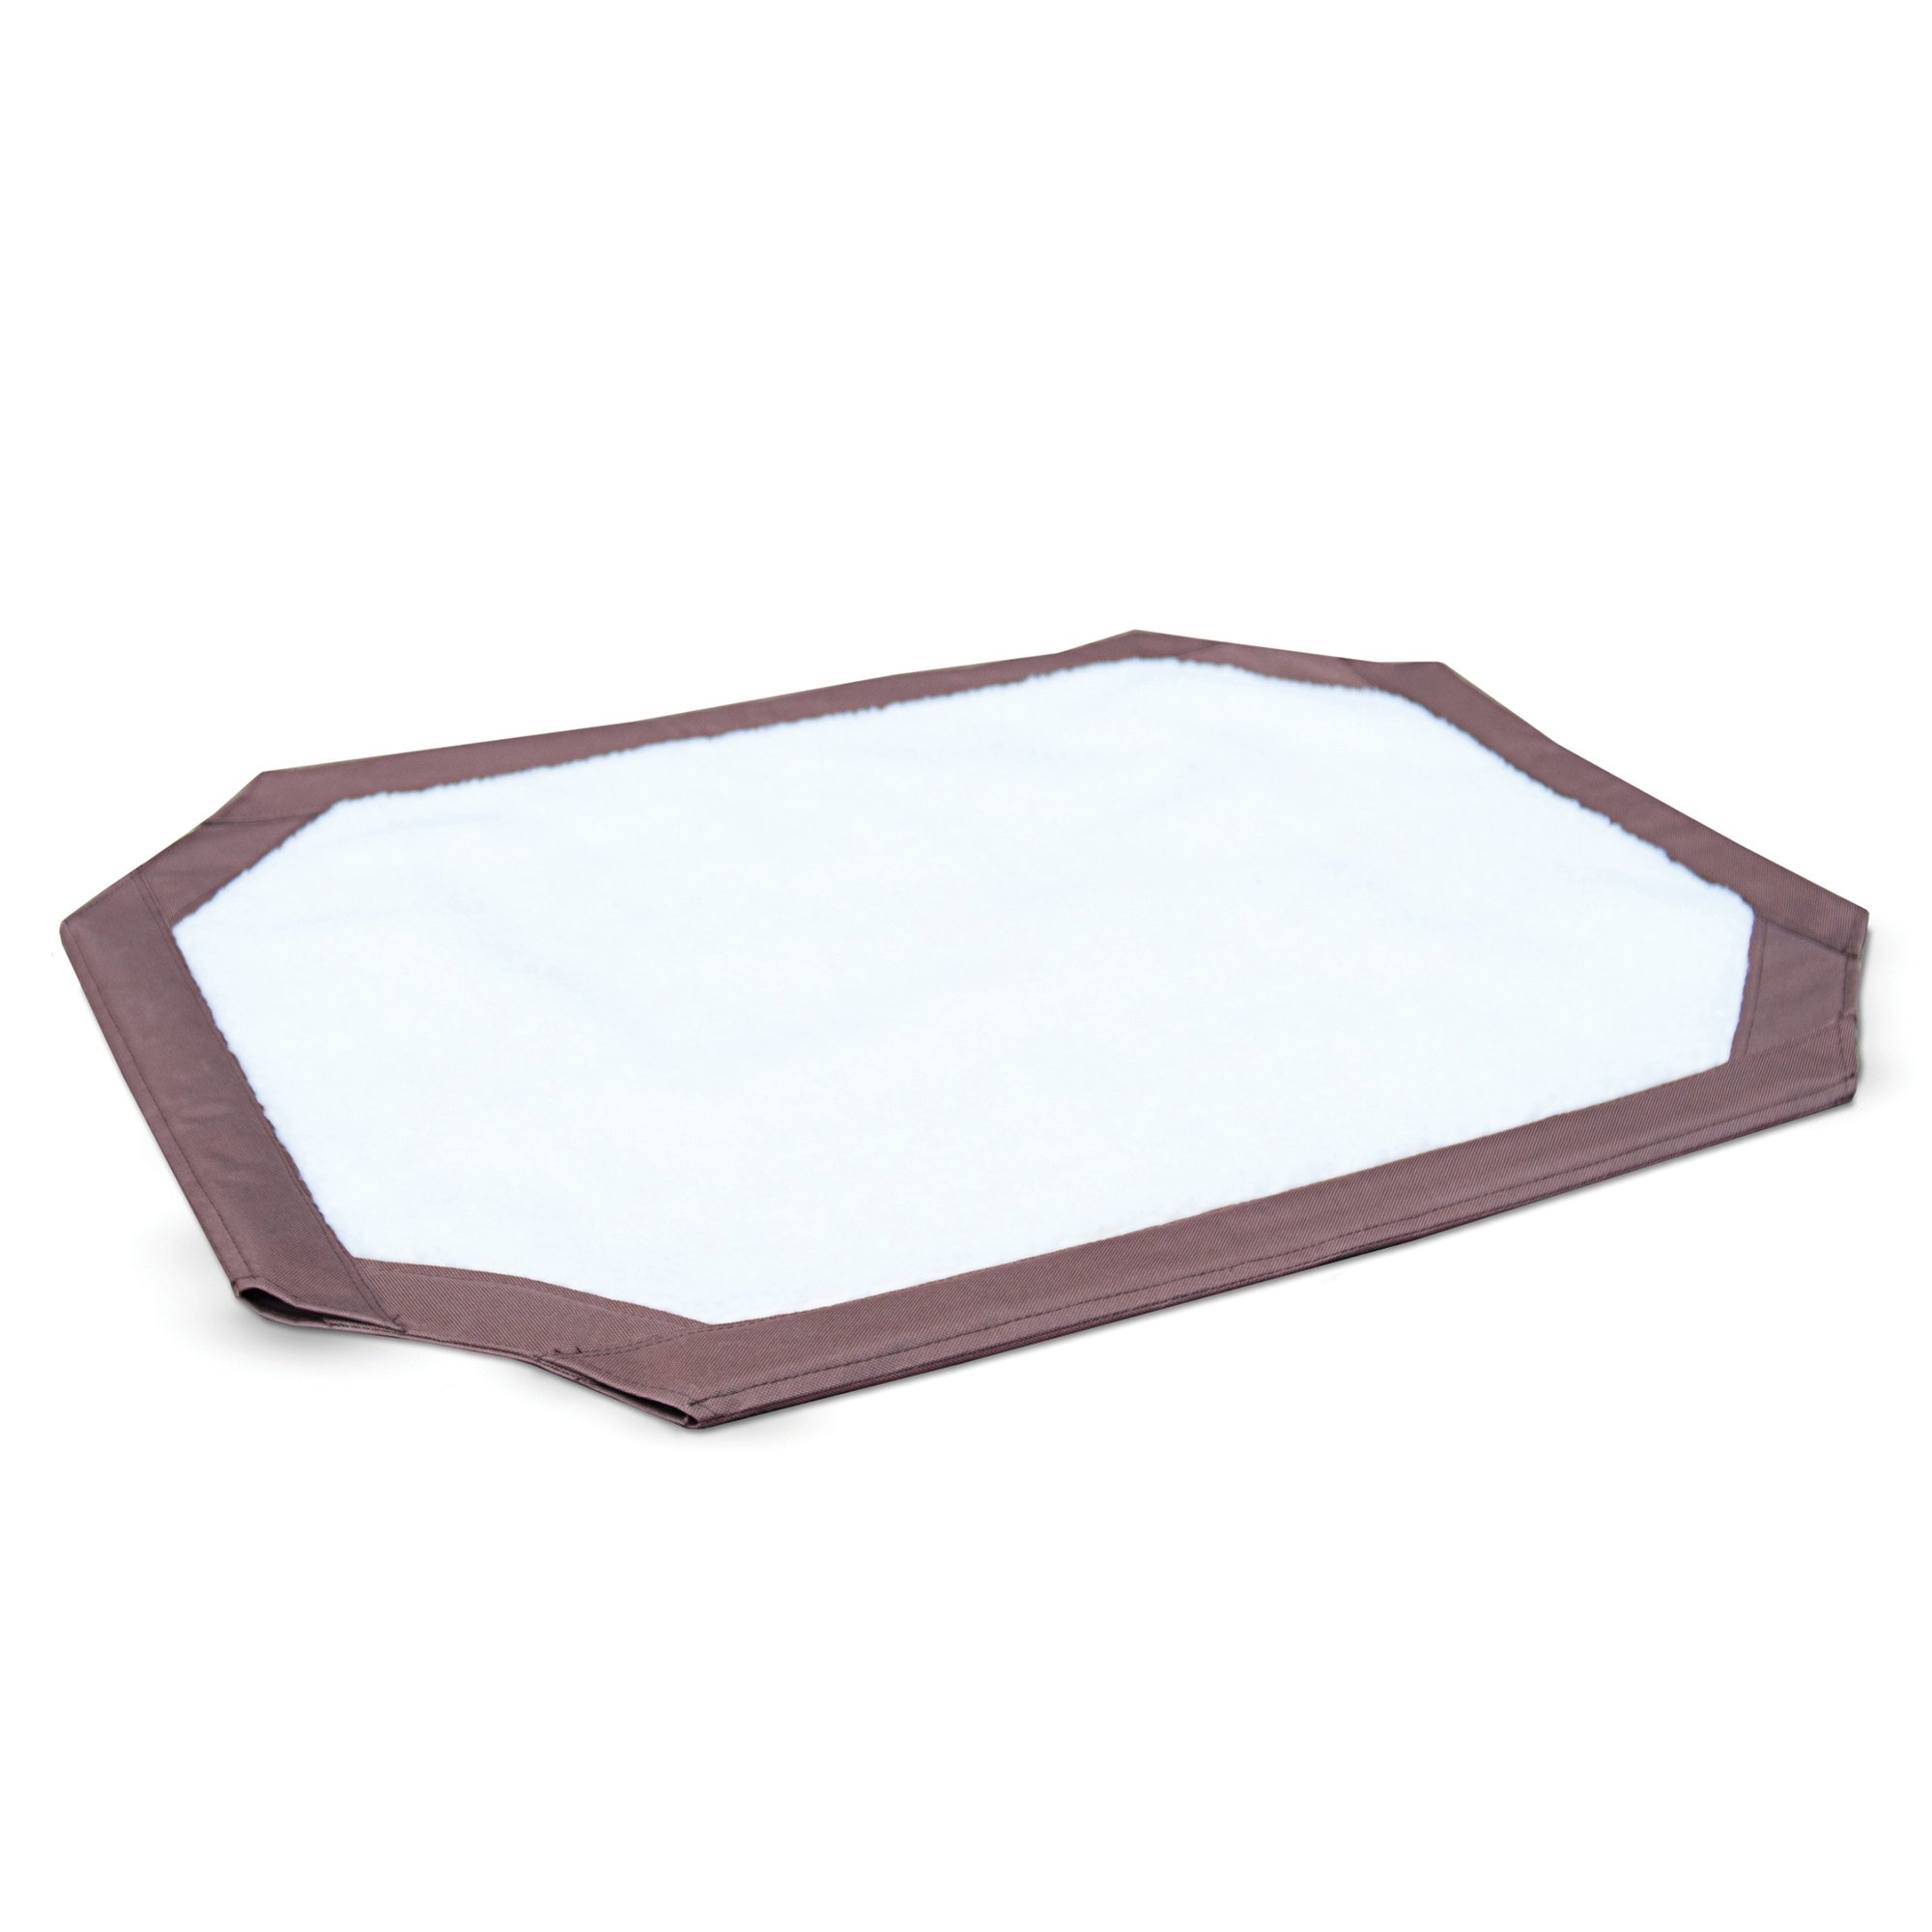 K&H Brown and White Self-Warming Pet Cot Cover